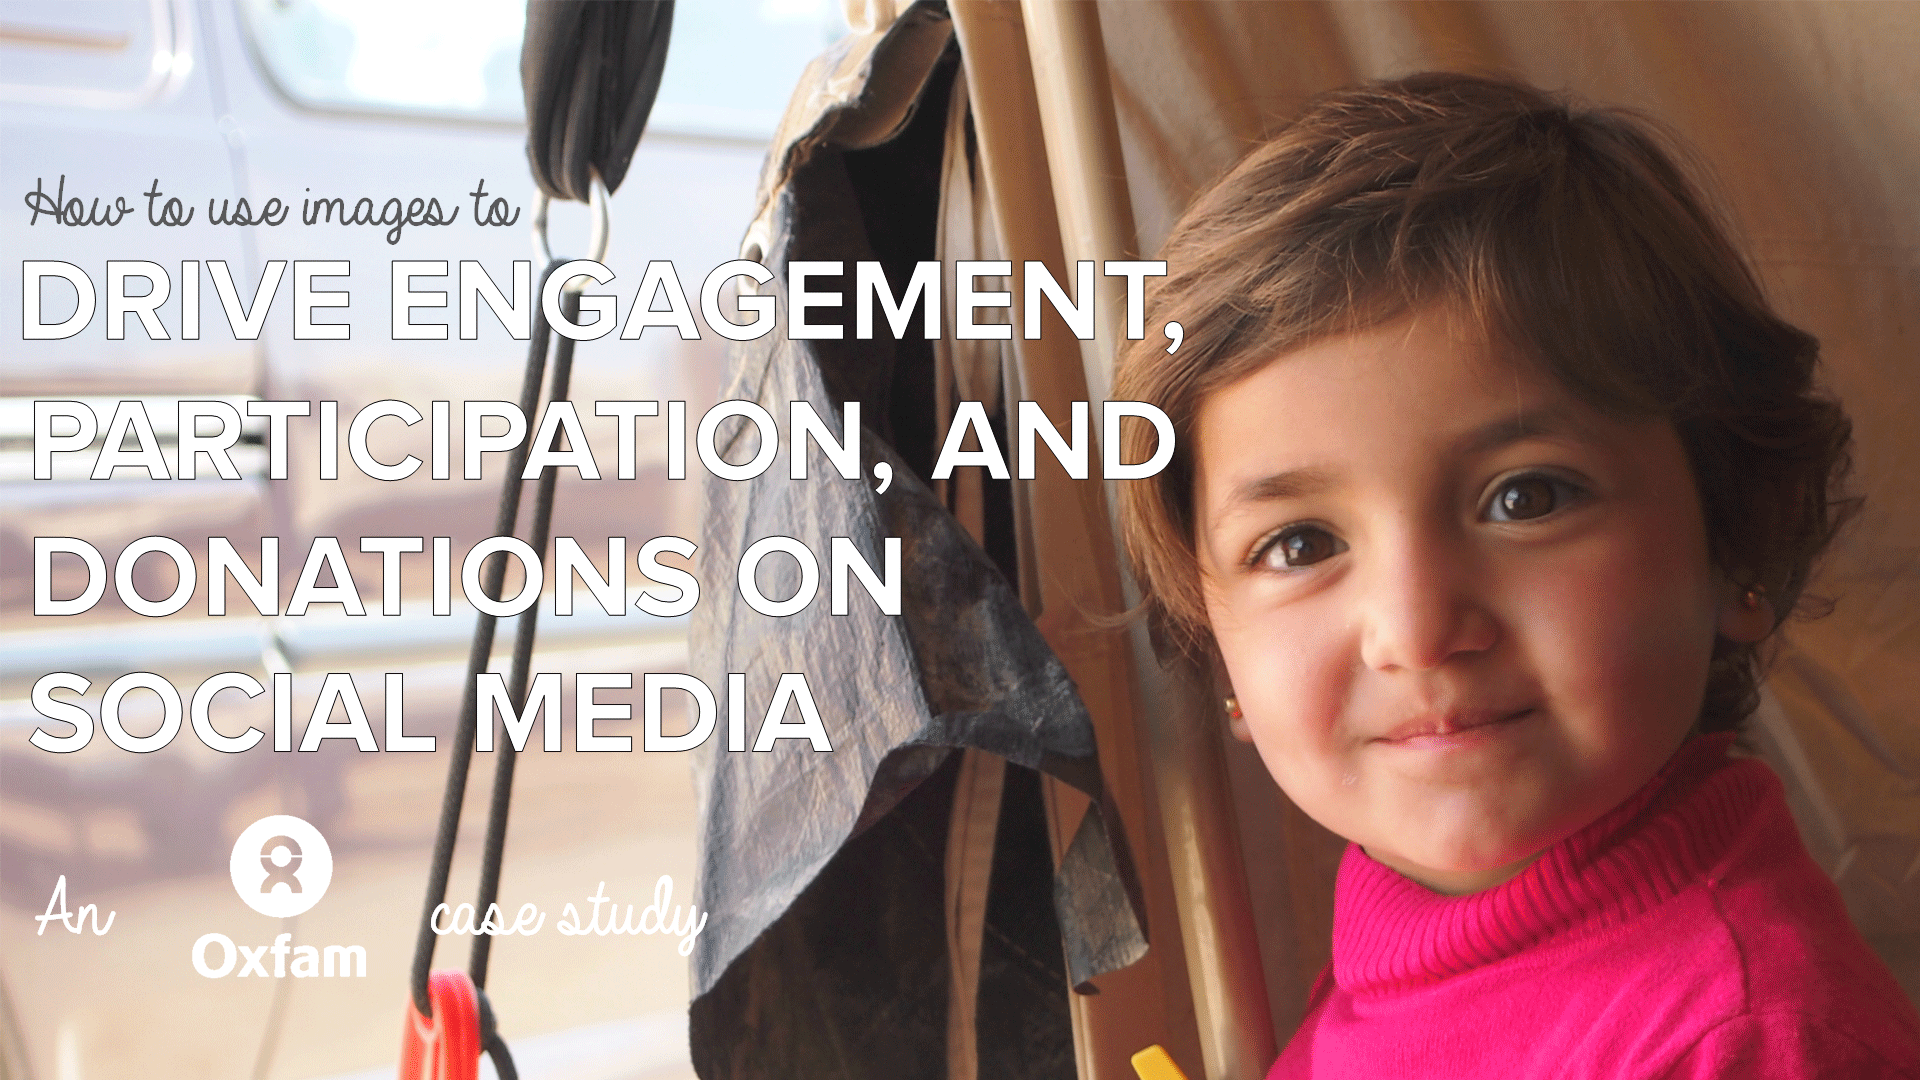 How Oxfam Uses Images to Drive Engagement and Donations (Non-profit Social Media Strategy)